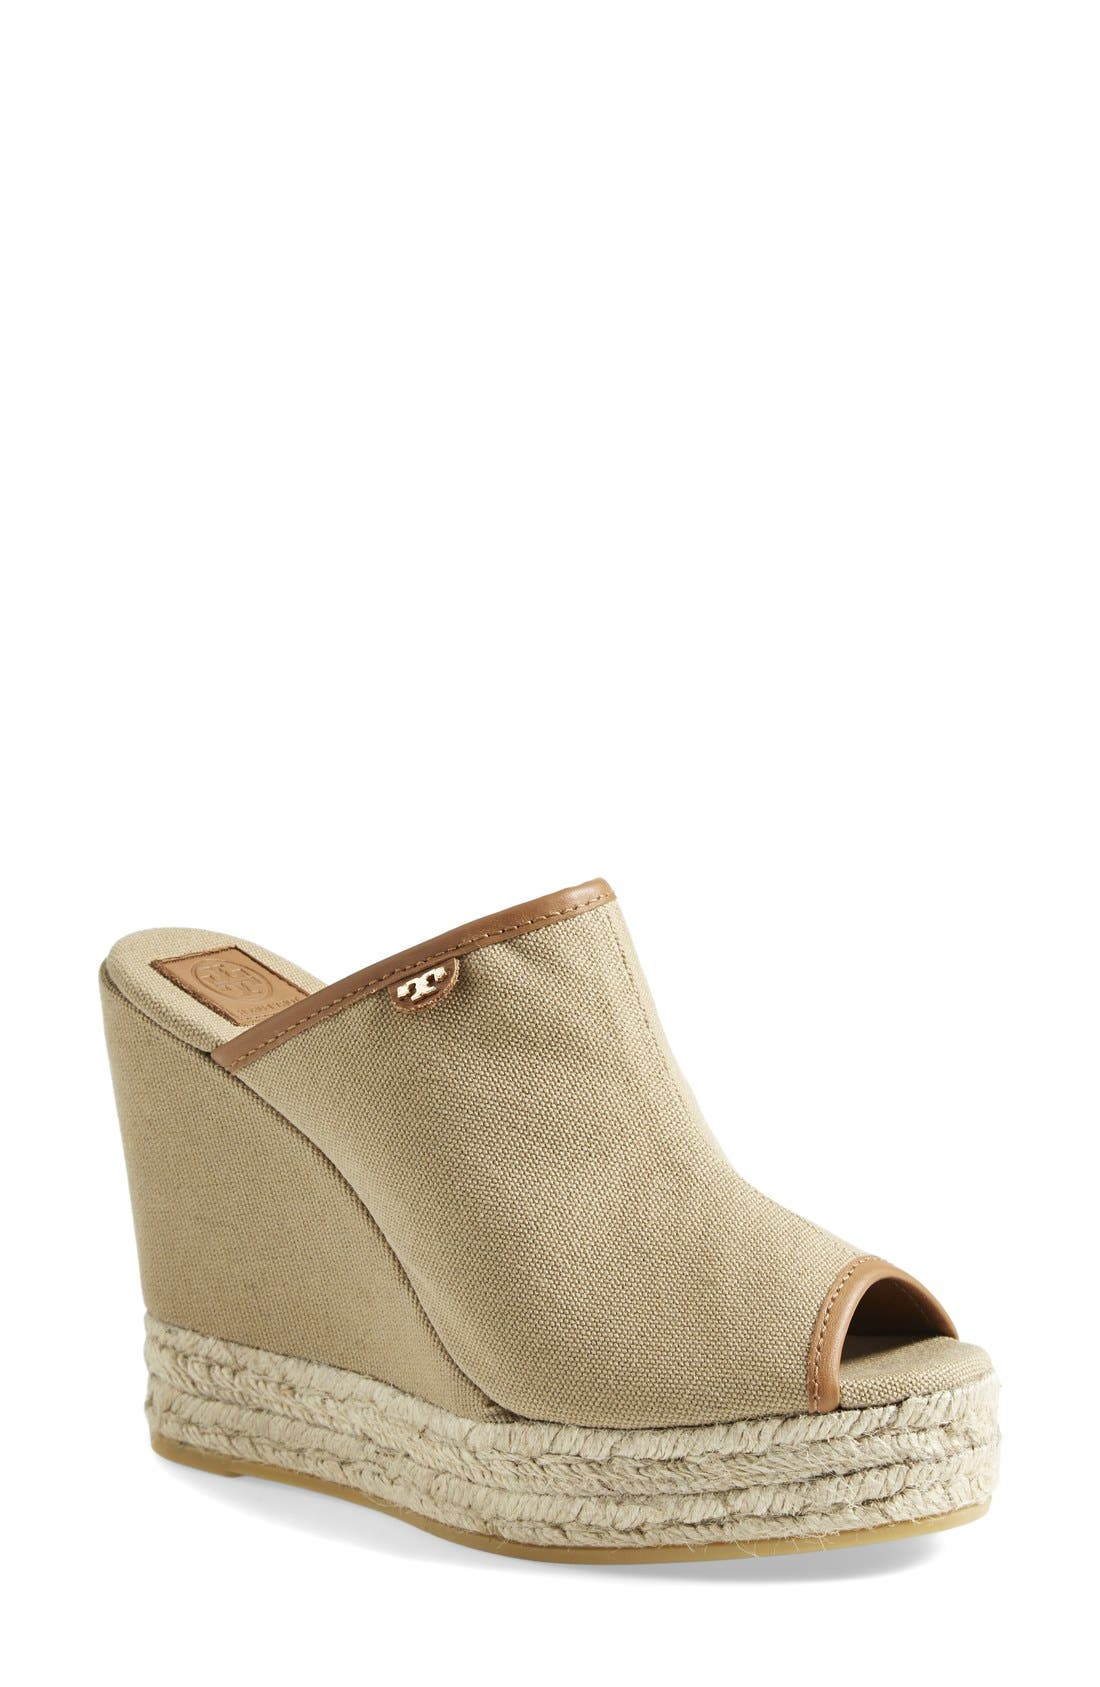 Alternate Image 1 Selected - Tory Burch Canvas Wedge Sandal (Women)